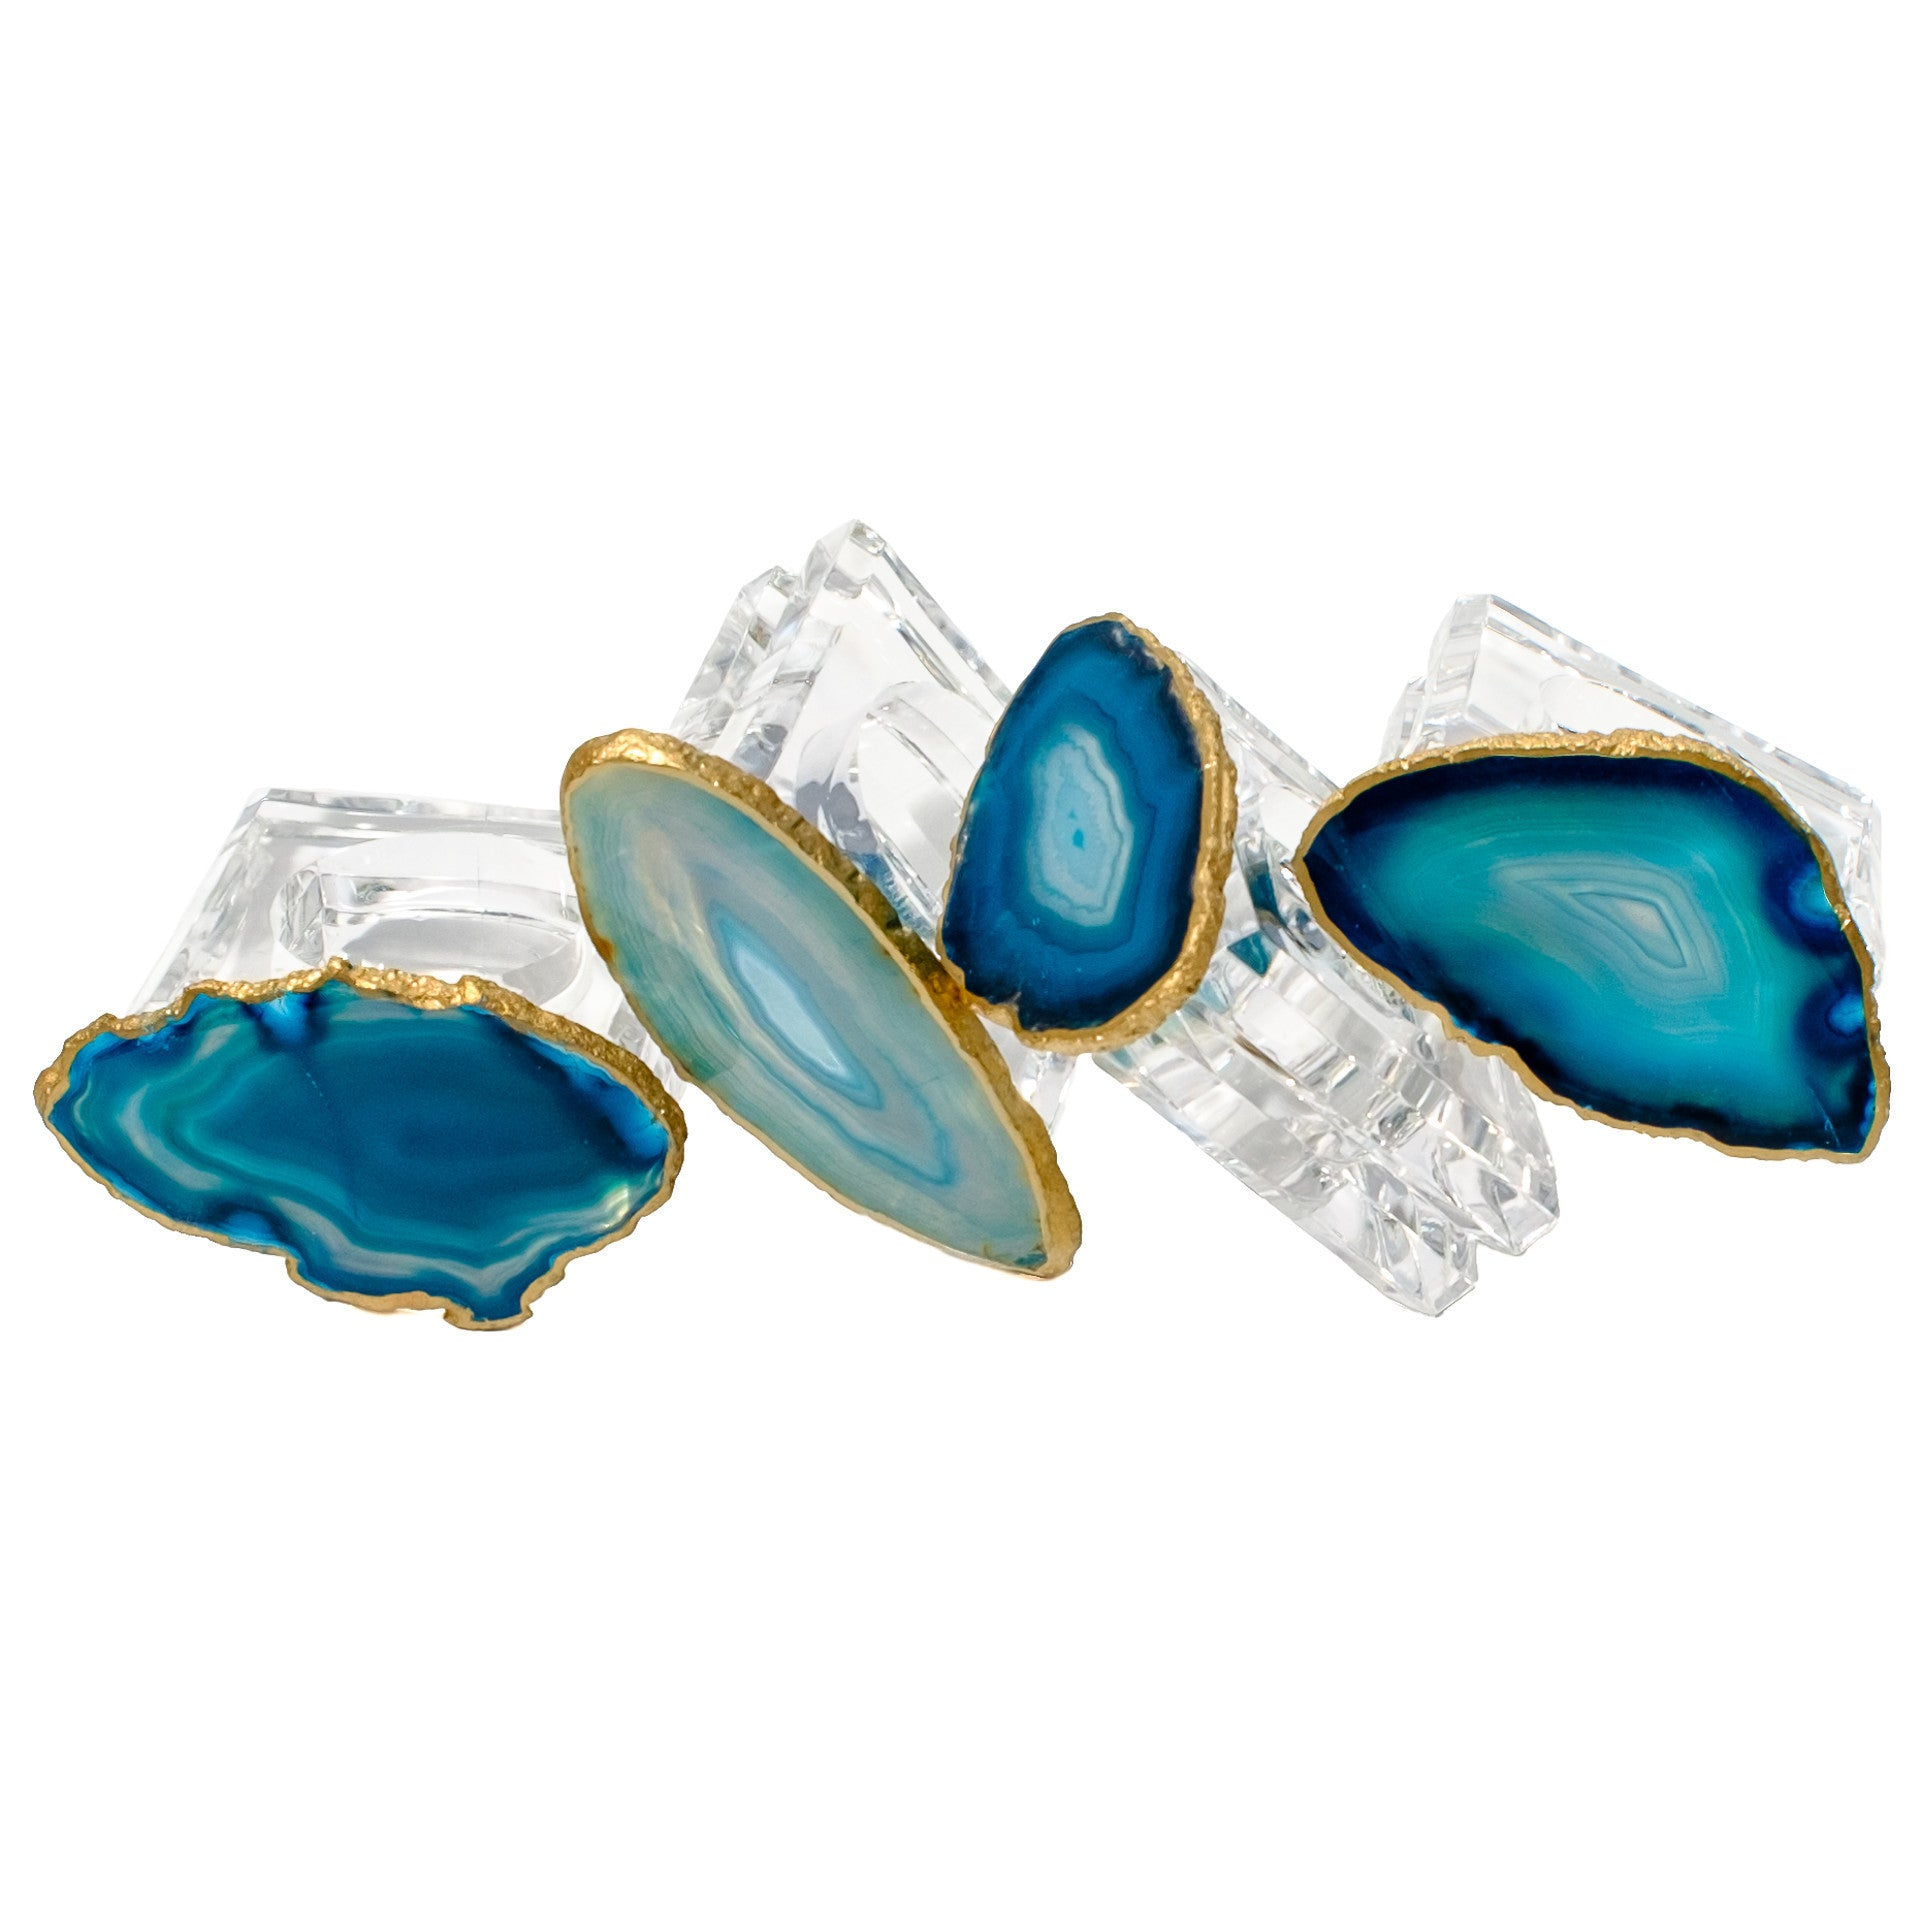 Teal Agate Napkin Rings